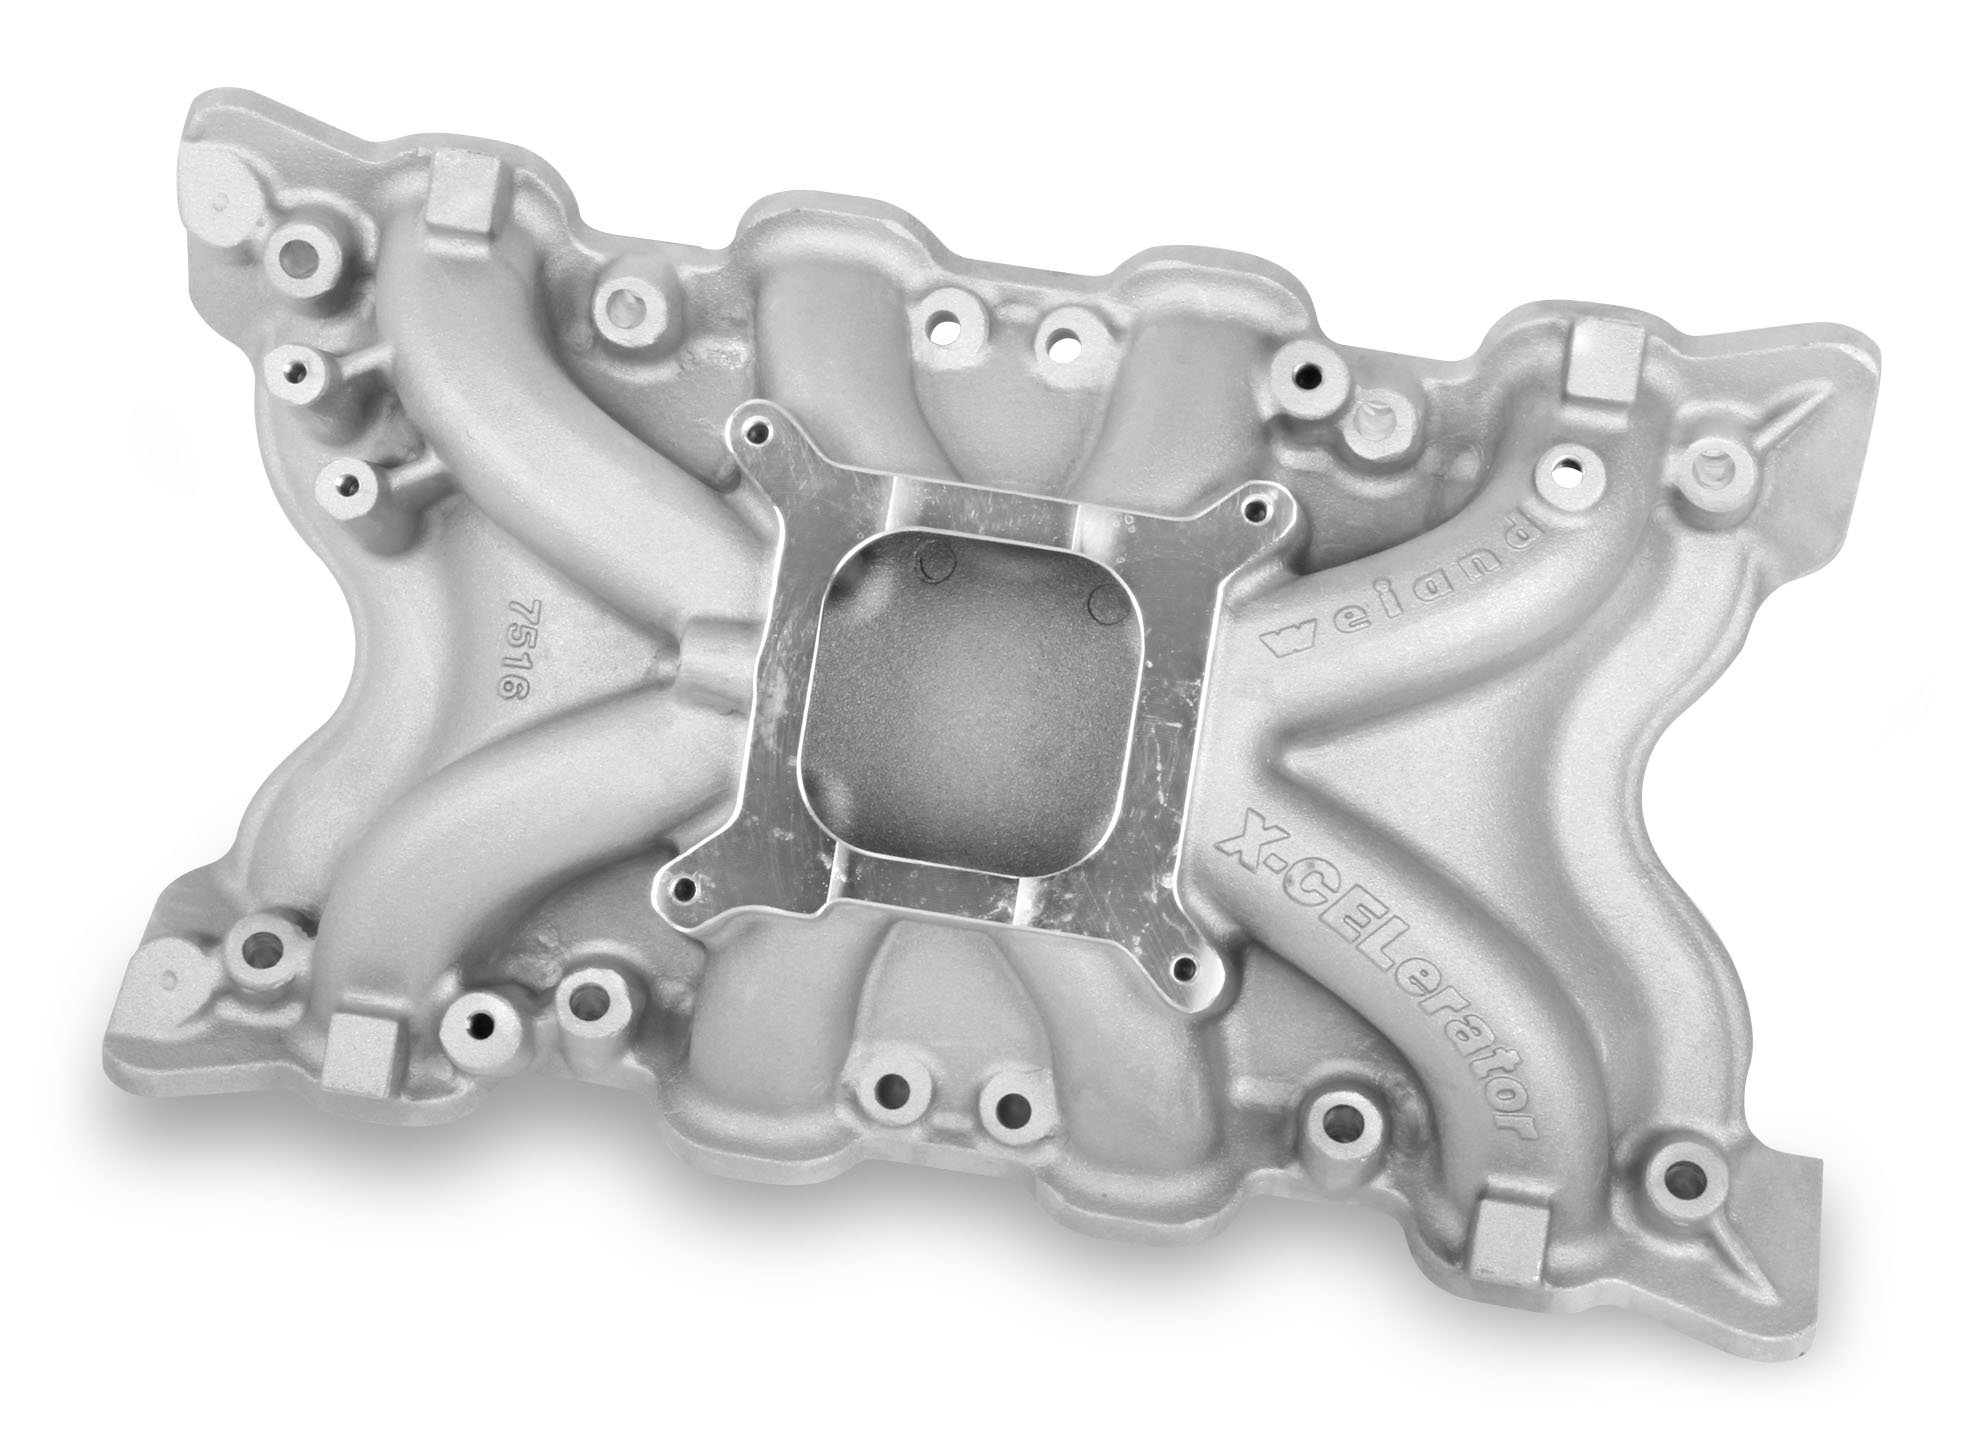 Weiand X-CELerator Intake - Ford Small Block V8 - 351C